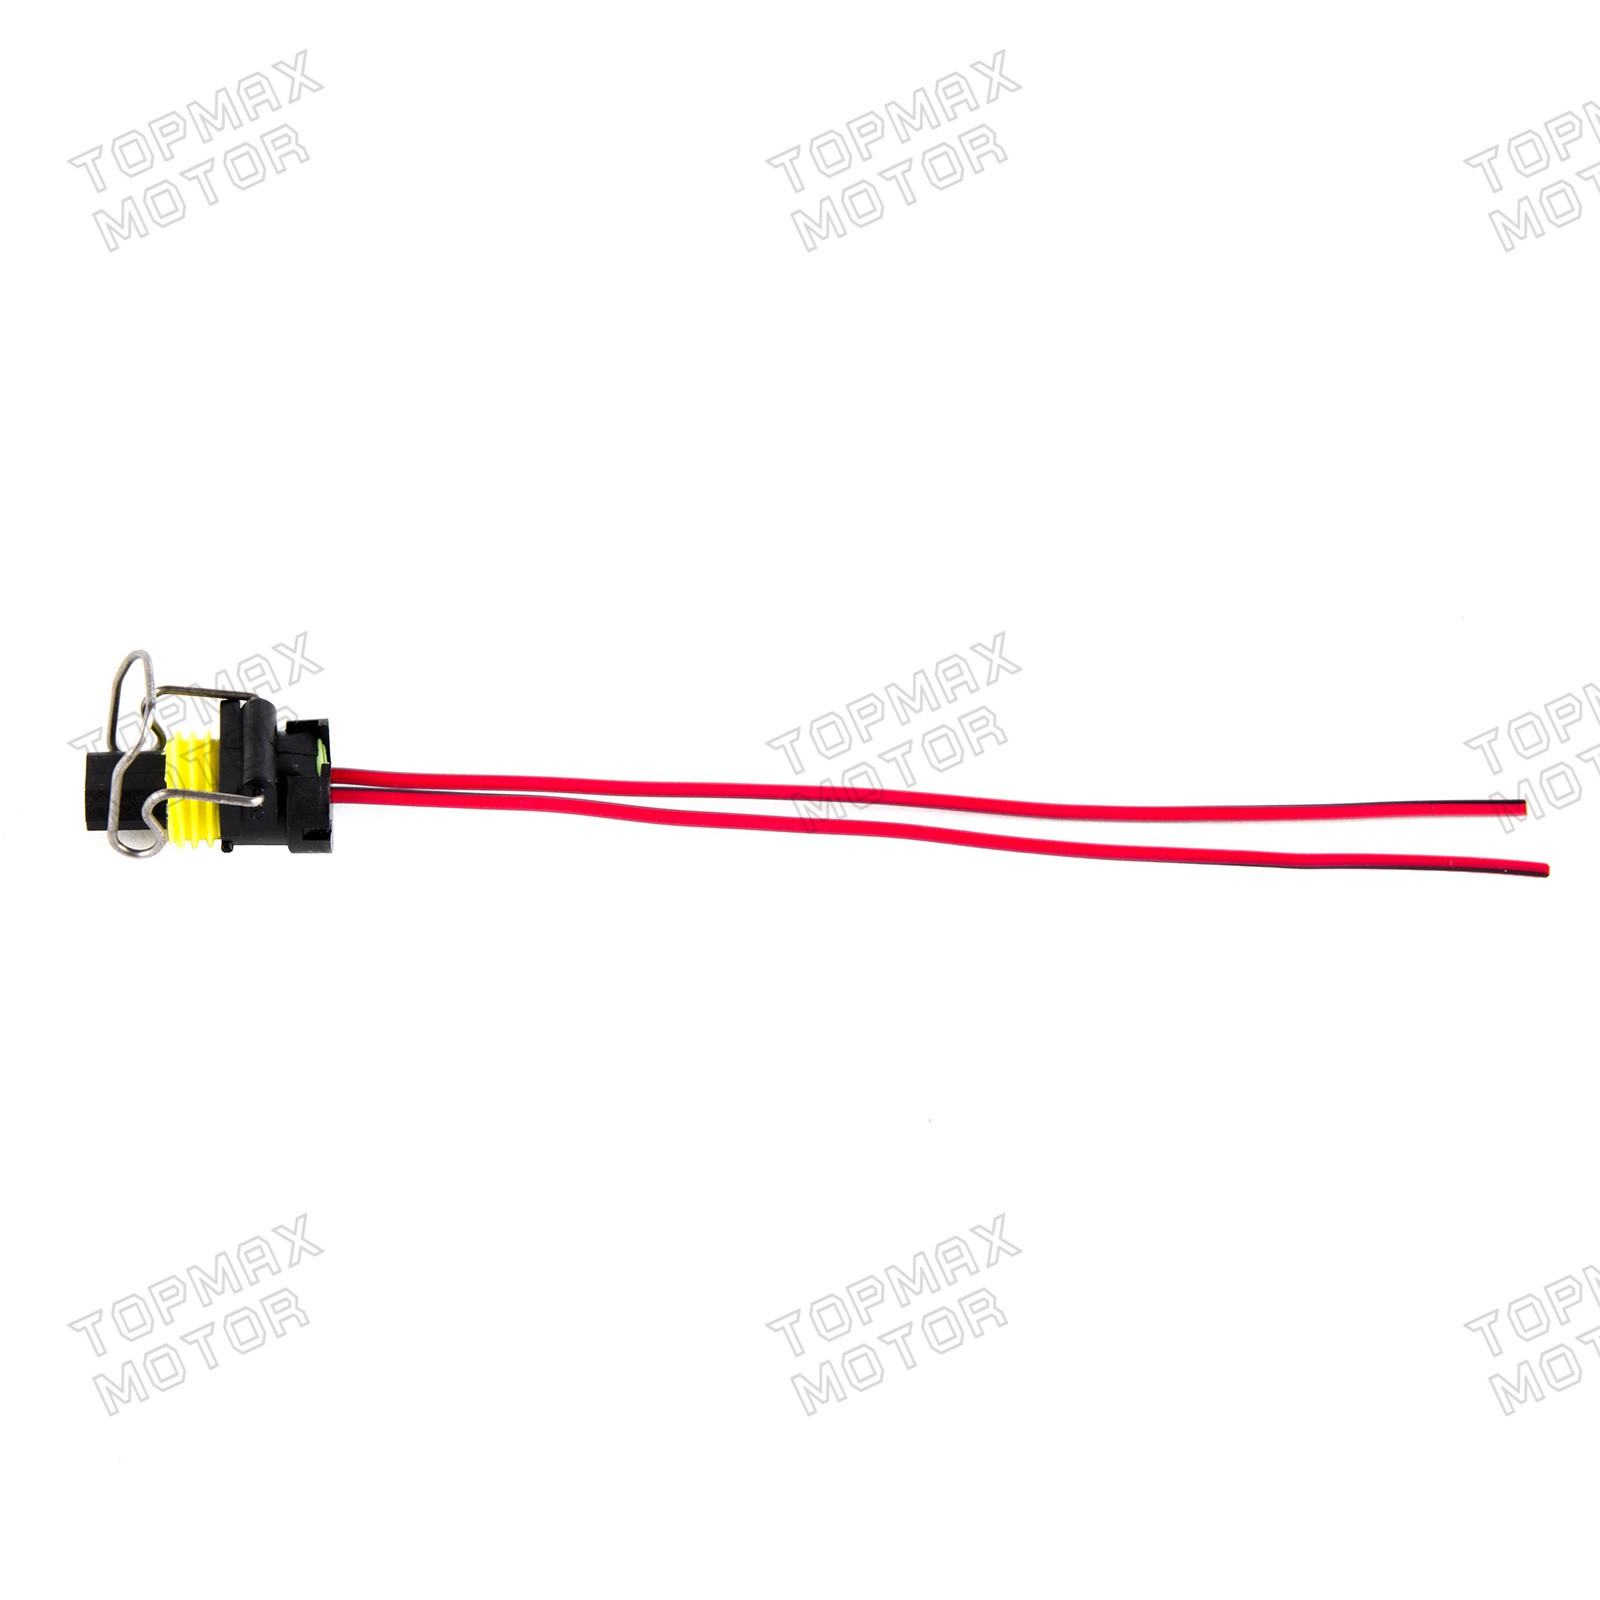 hight resolution of turbo vgt solenoid injection ipr valve pigtail for ford powerstroke 6 0l 7 3l